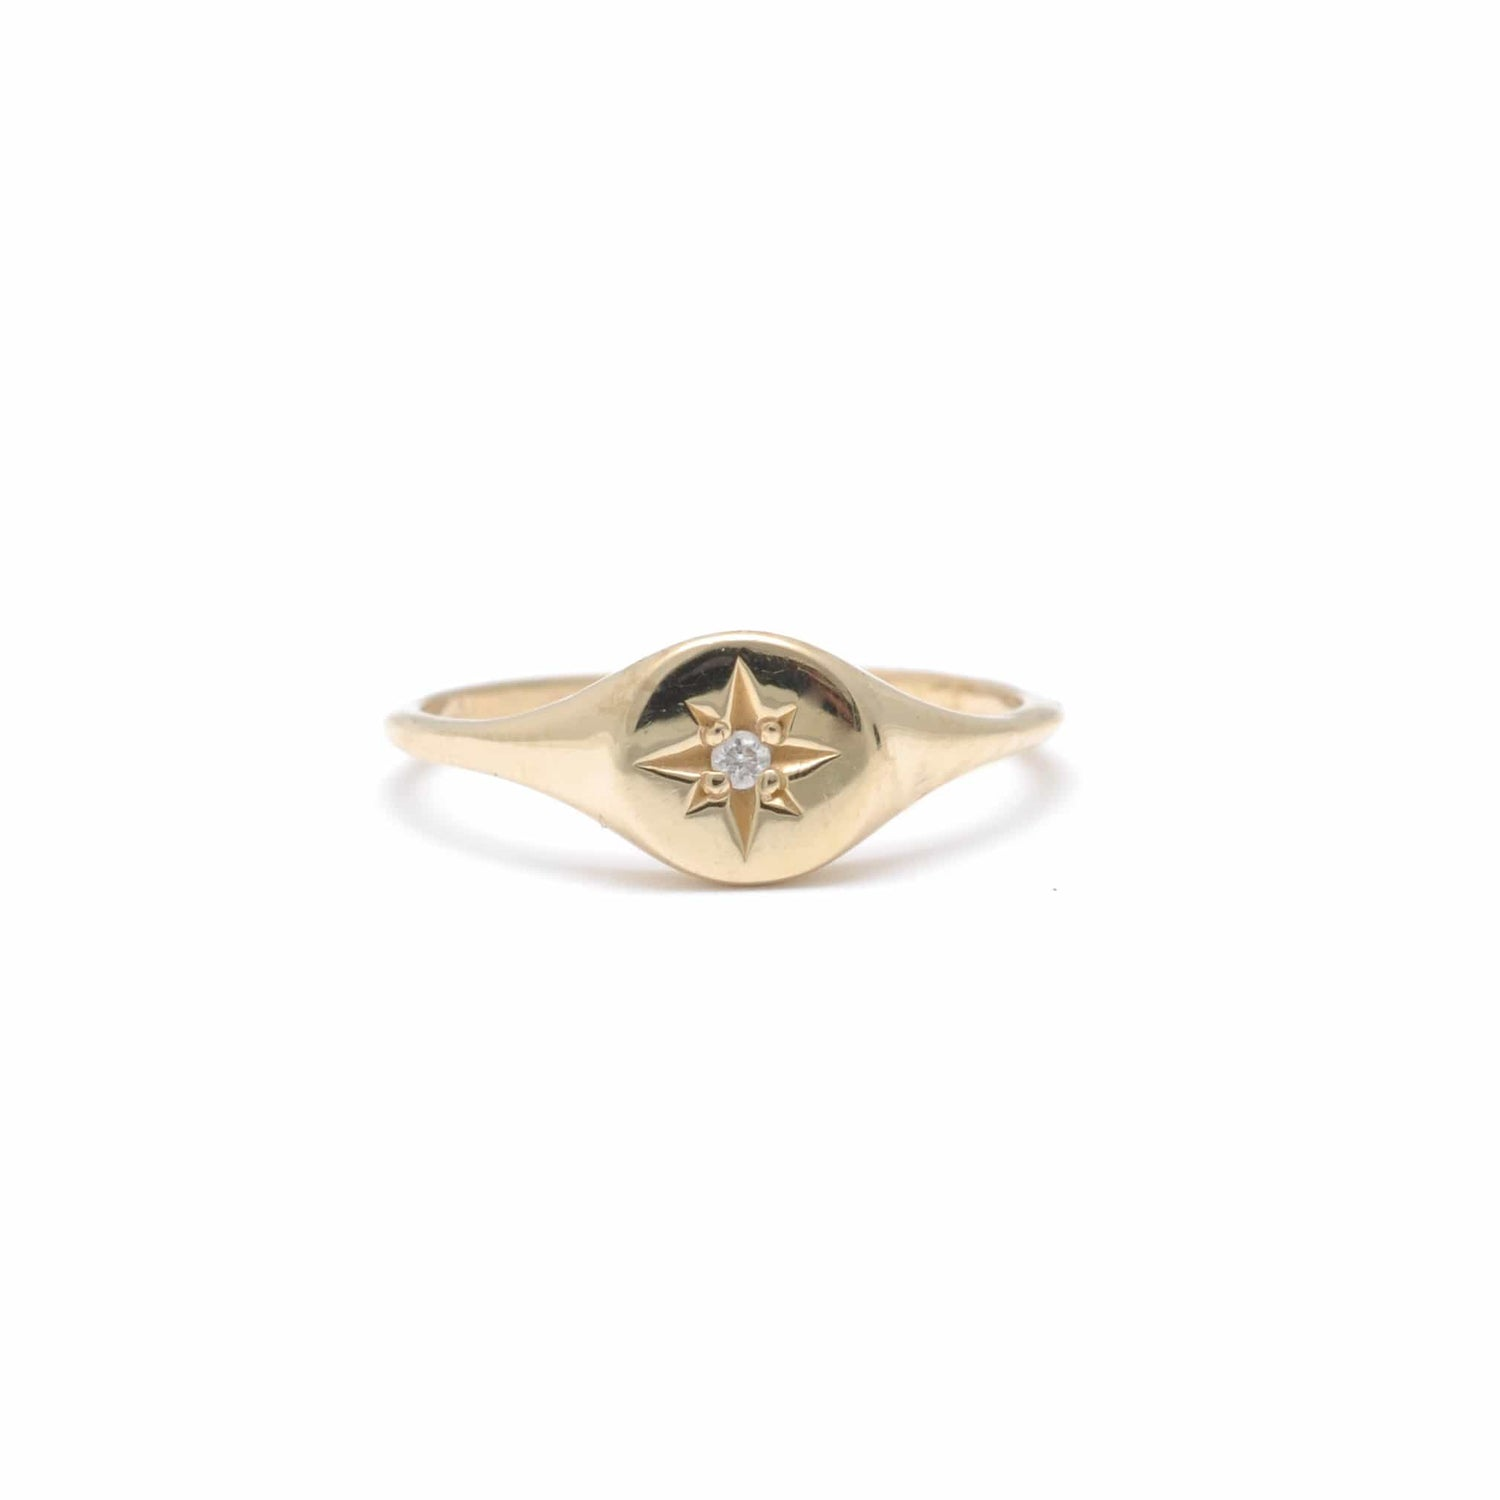 Star Signet Pinky Ring